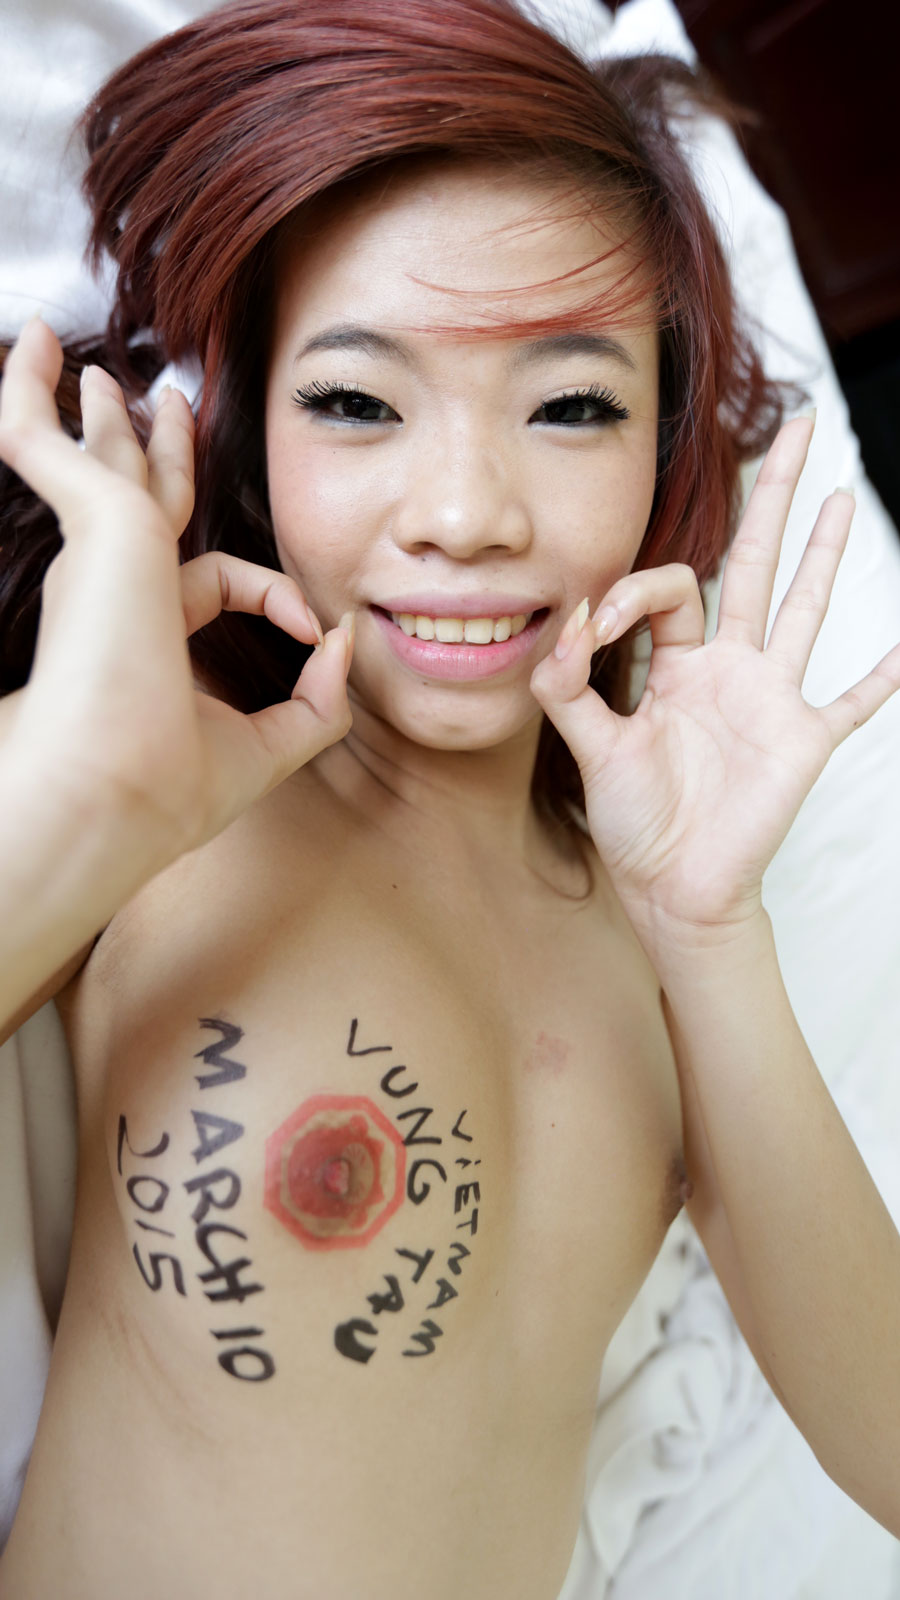 Topless Vietnamese babe striking a pose with exposed tiny tits